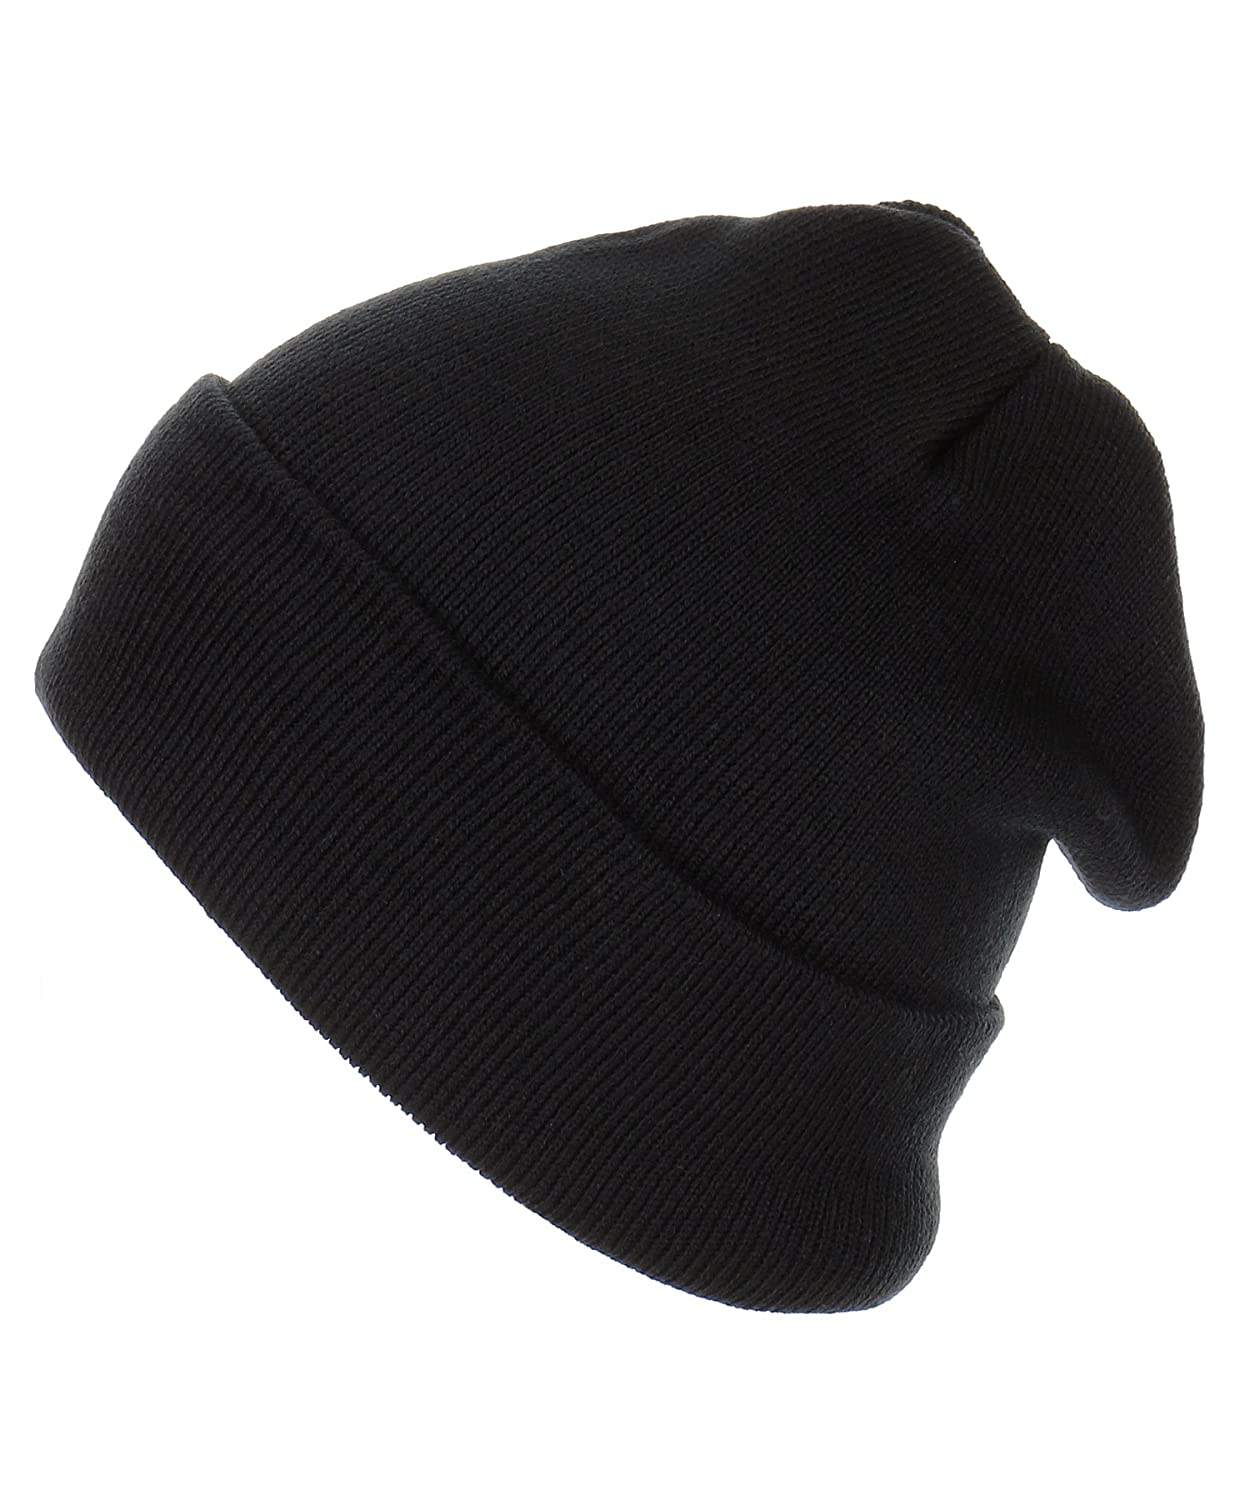 Amazon.com  RufnTop Thick Plain Knit Beanie Slouchy Cuff Toboggan Daily Hat  Soft Unisex Solid Skull Cap(Black One Size)  Sports   Outdoors 0bad3b6cc1b